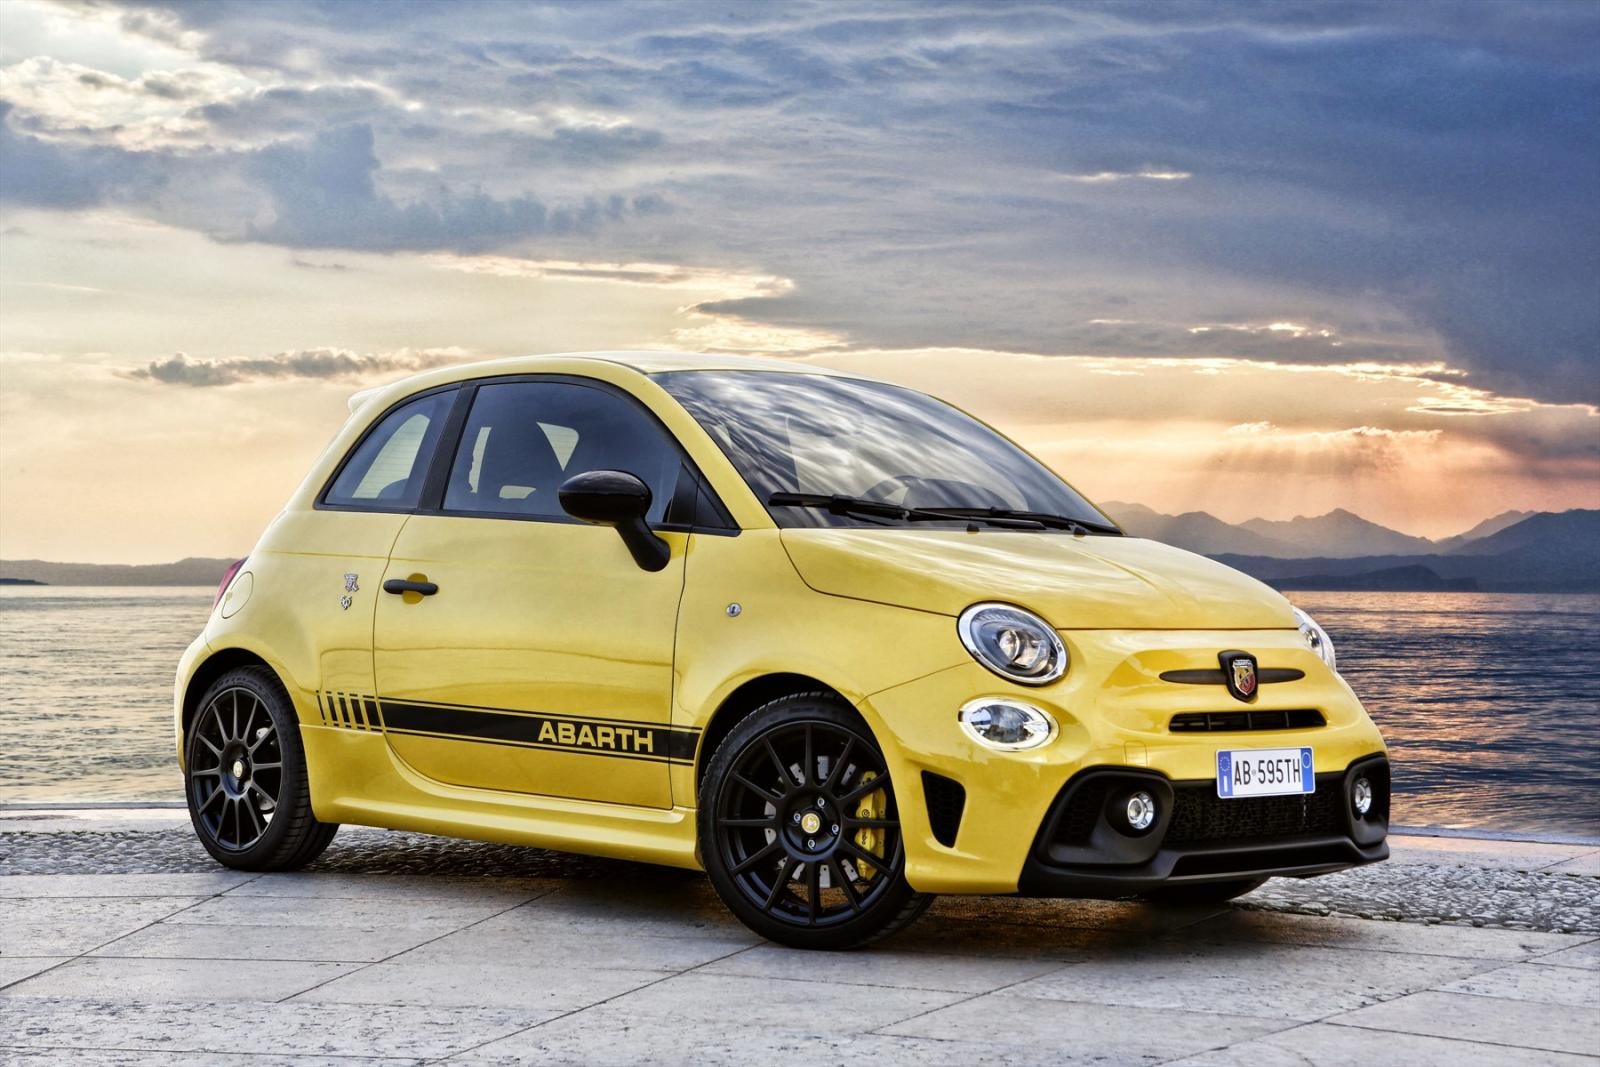 Fiat Abarth 595 (2017) Specs & Price - Cars.co.za